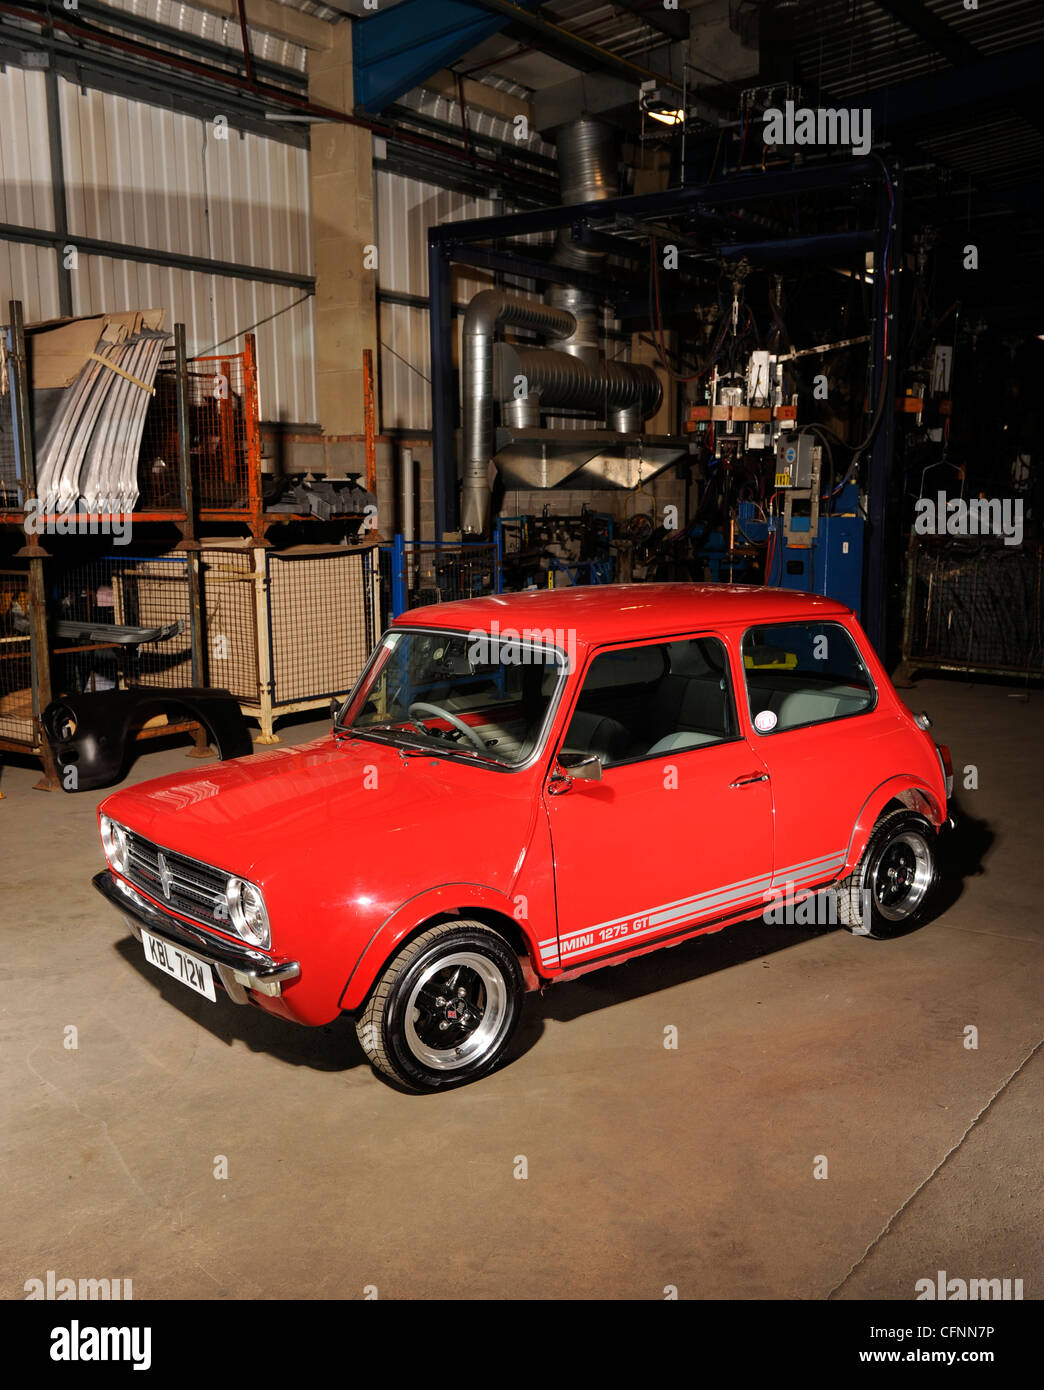 1980 Austin Mini 1275 GT - Stock Image